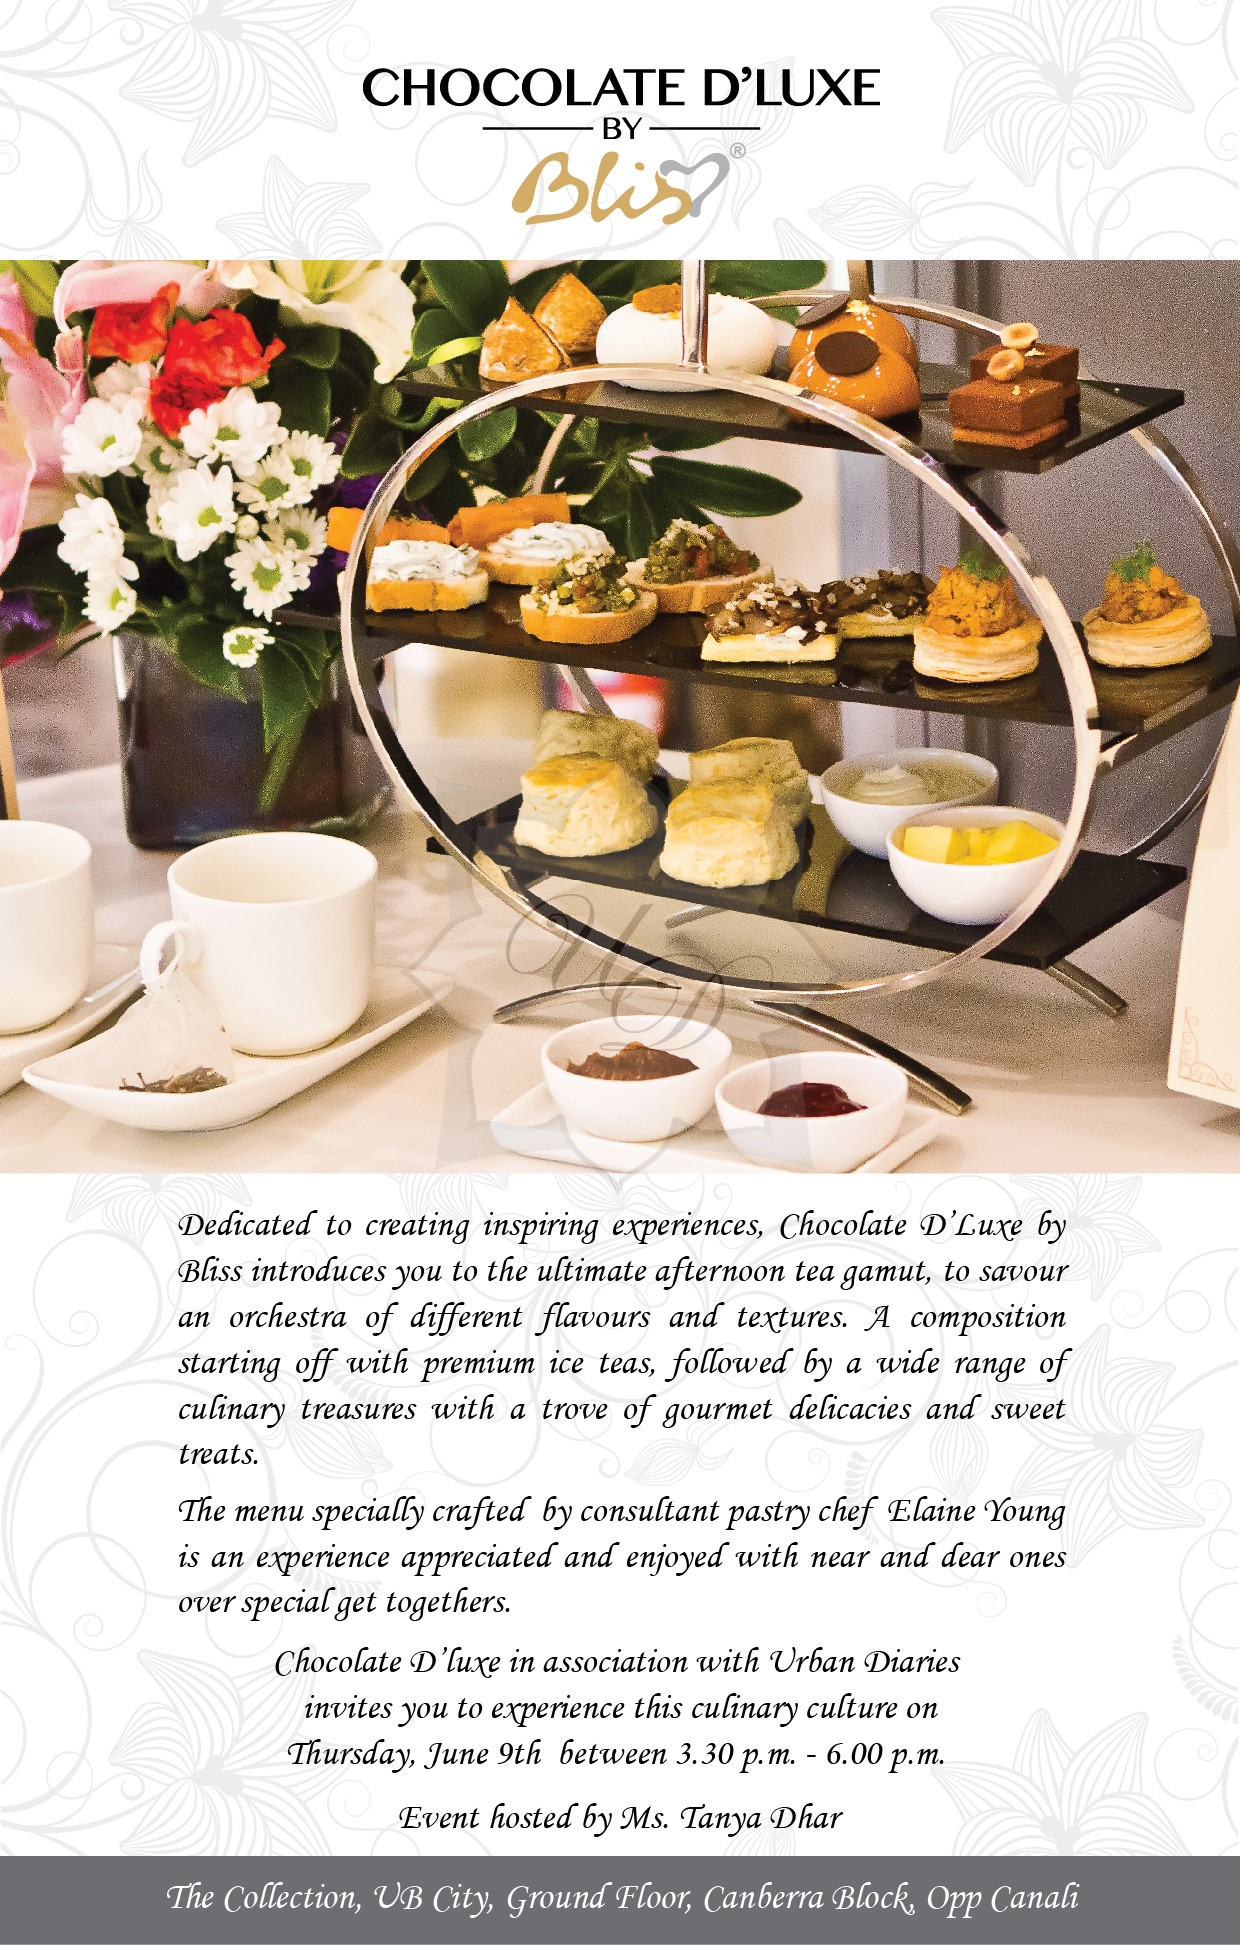 Chocolate D'Luxe by Bliss introduces its Afternoon Tea Experience